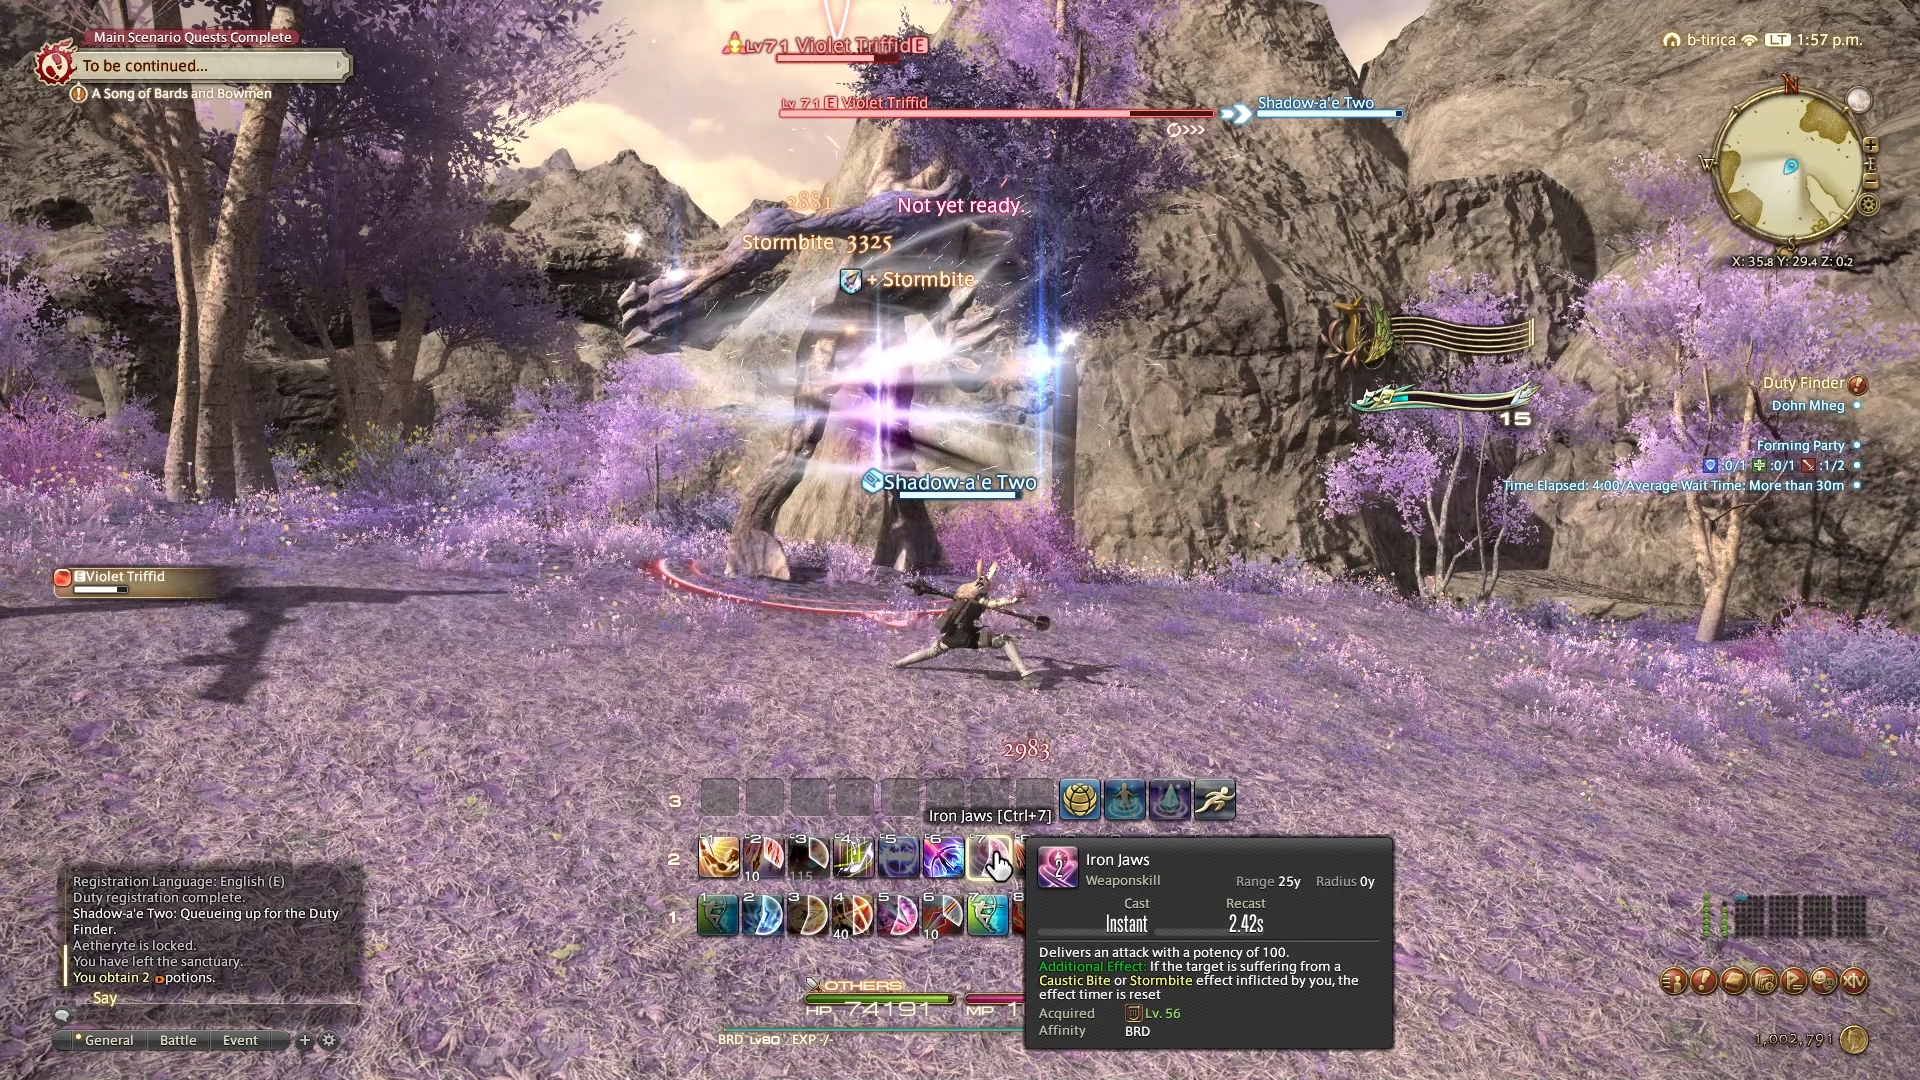 Final Fantasy XIV: Shadowbringers Hands-on Preview and Gameplay Footage